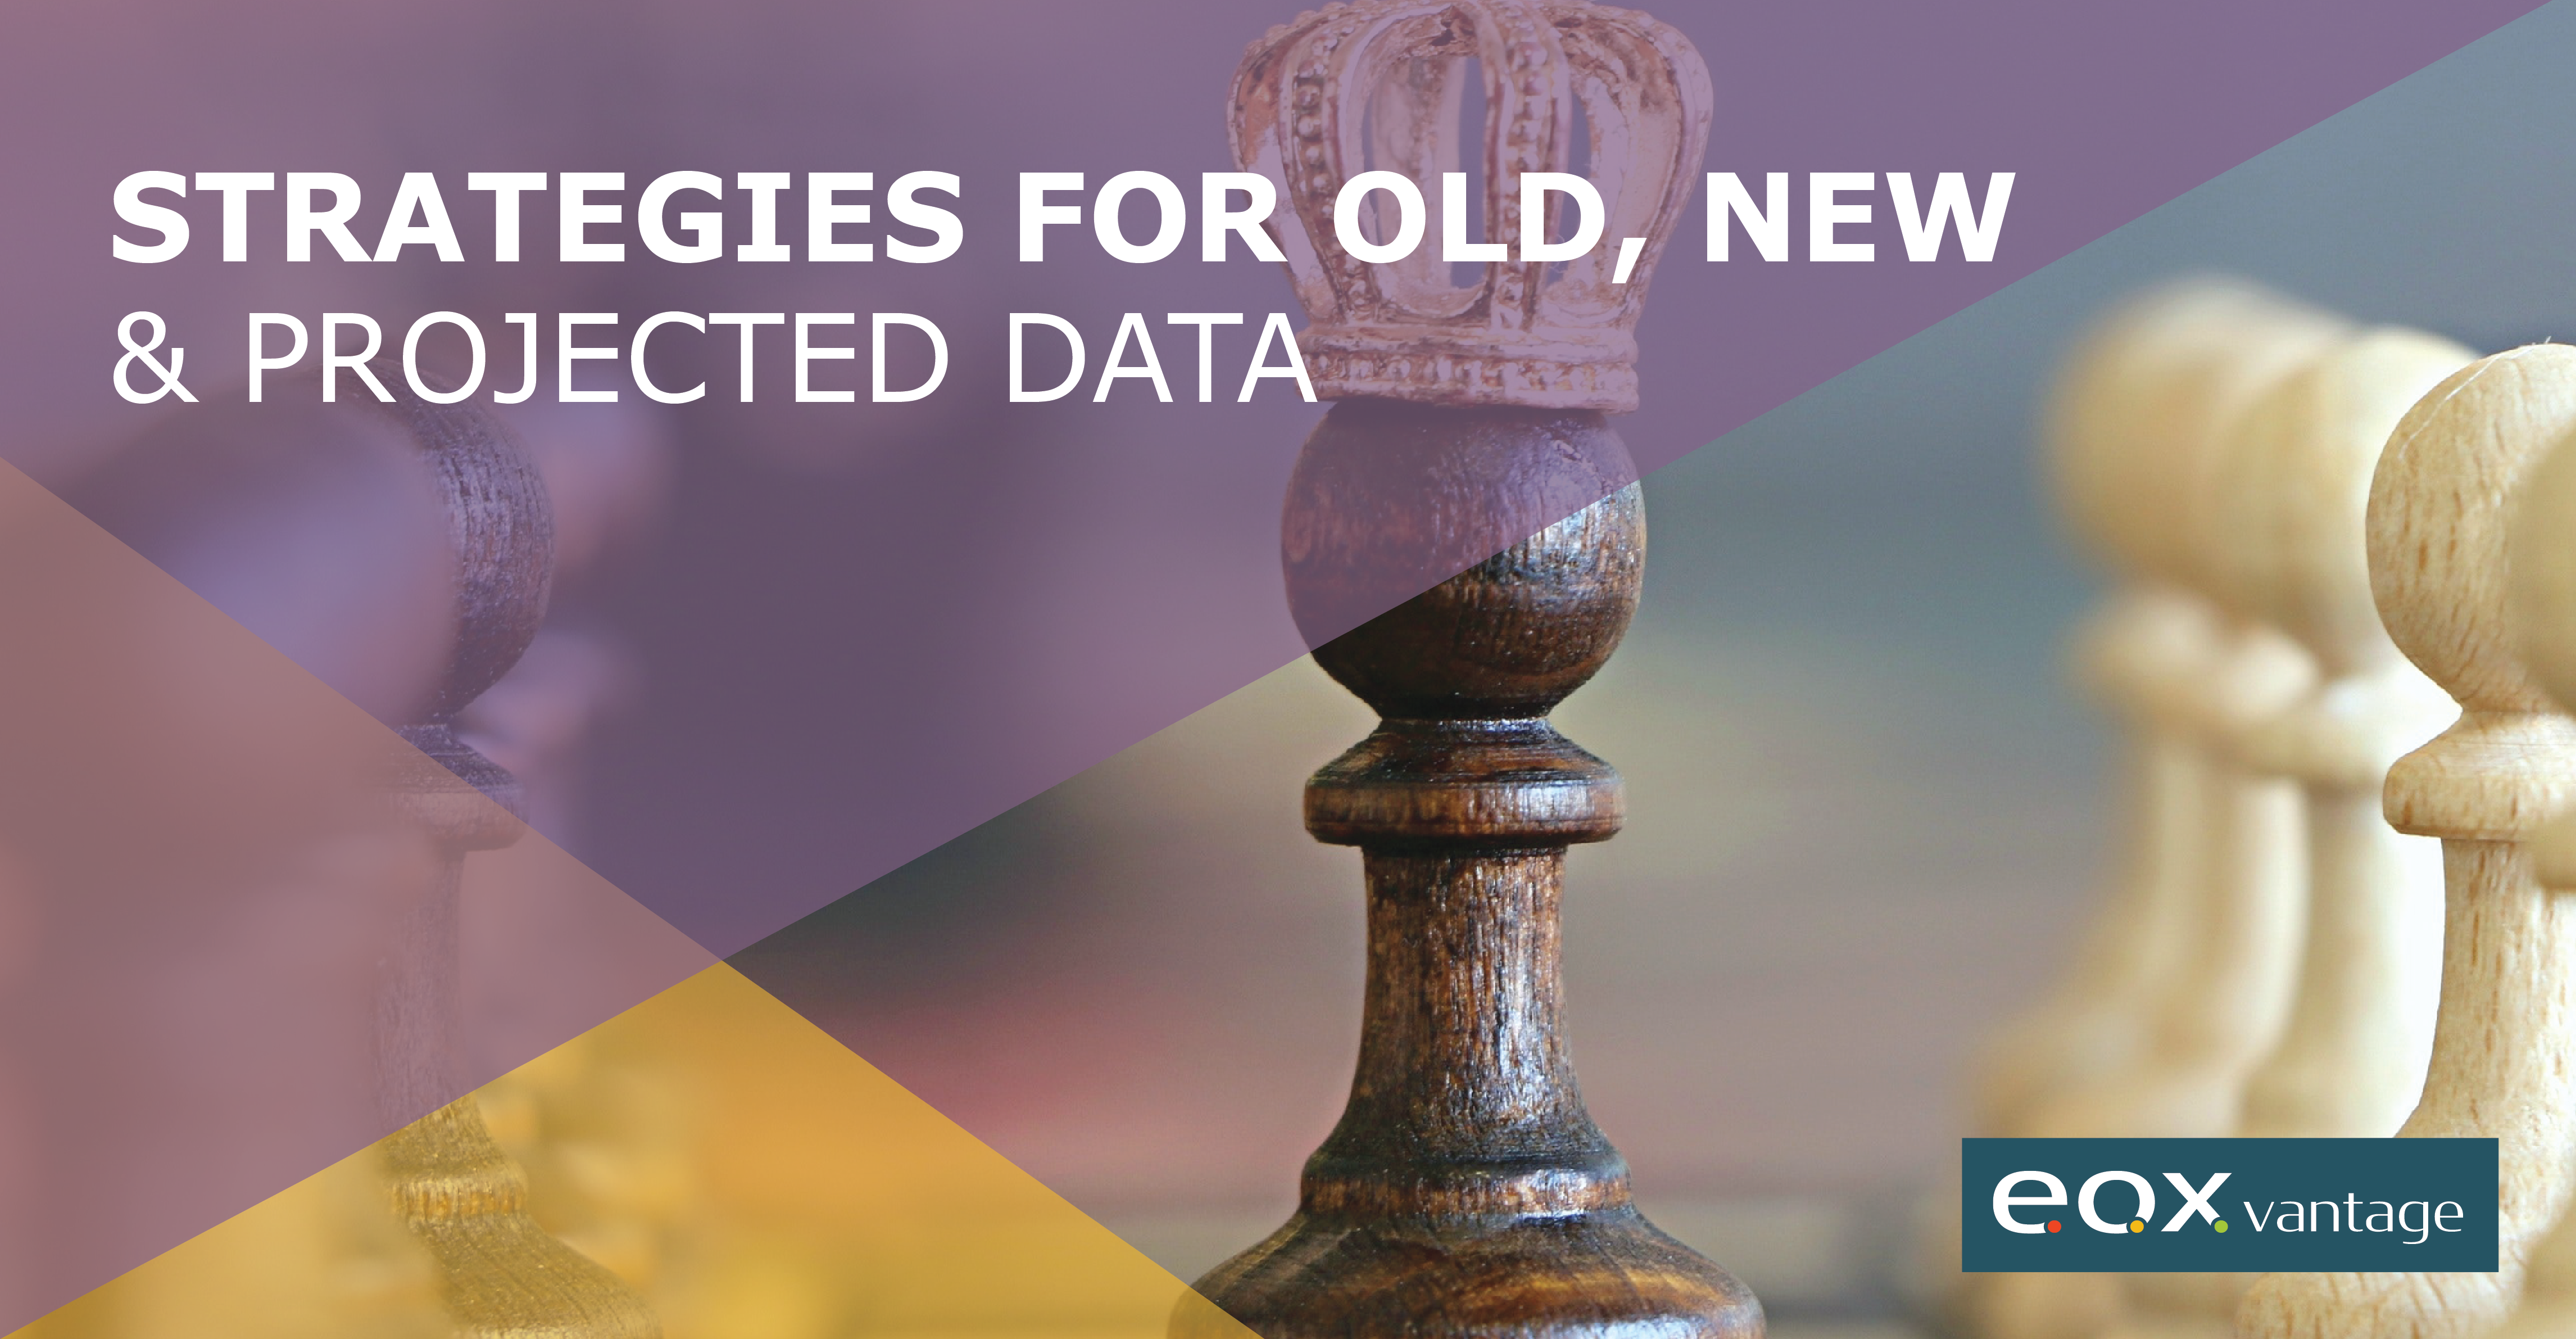 optimize your data standards